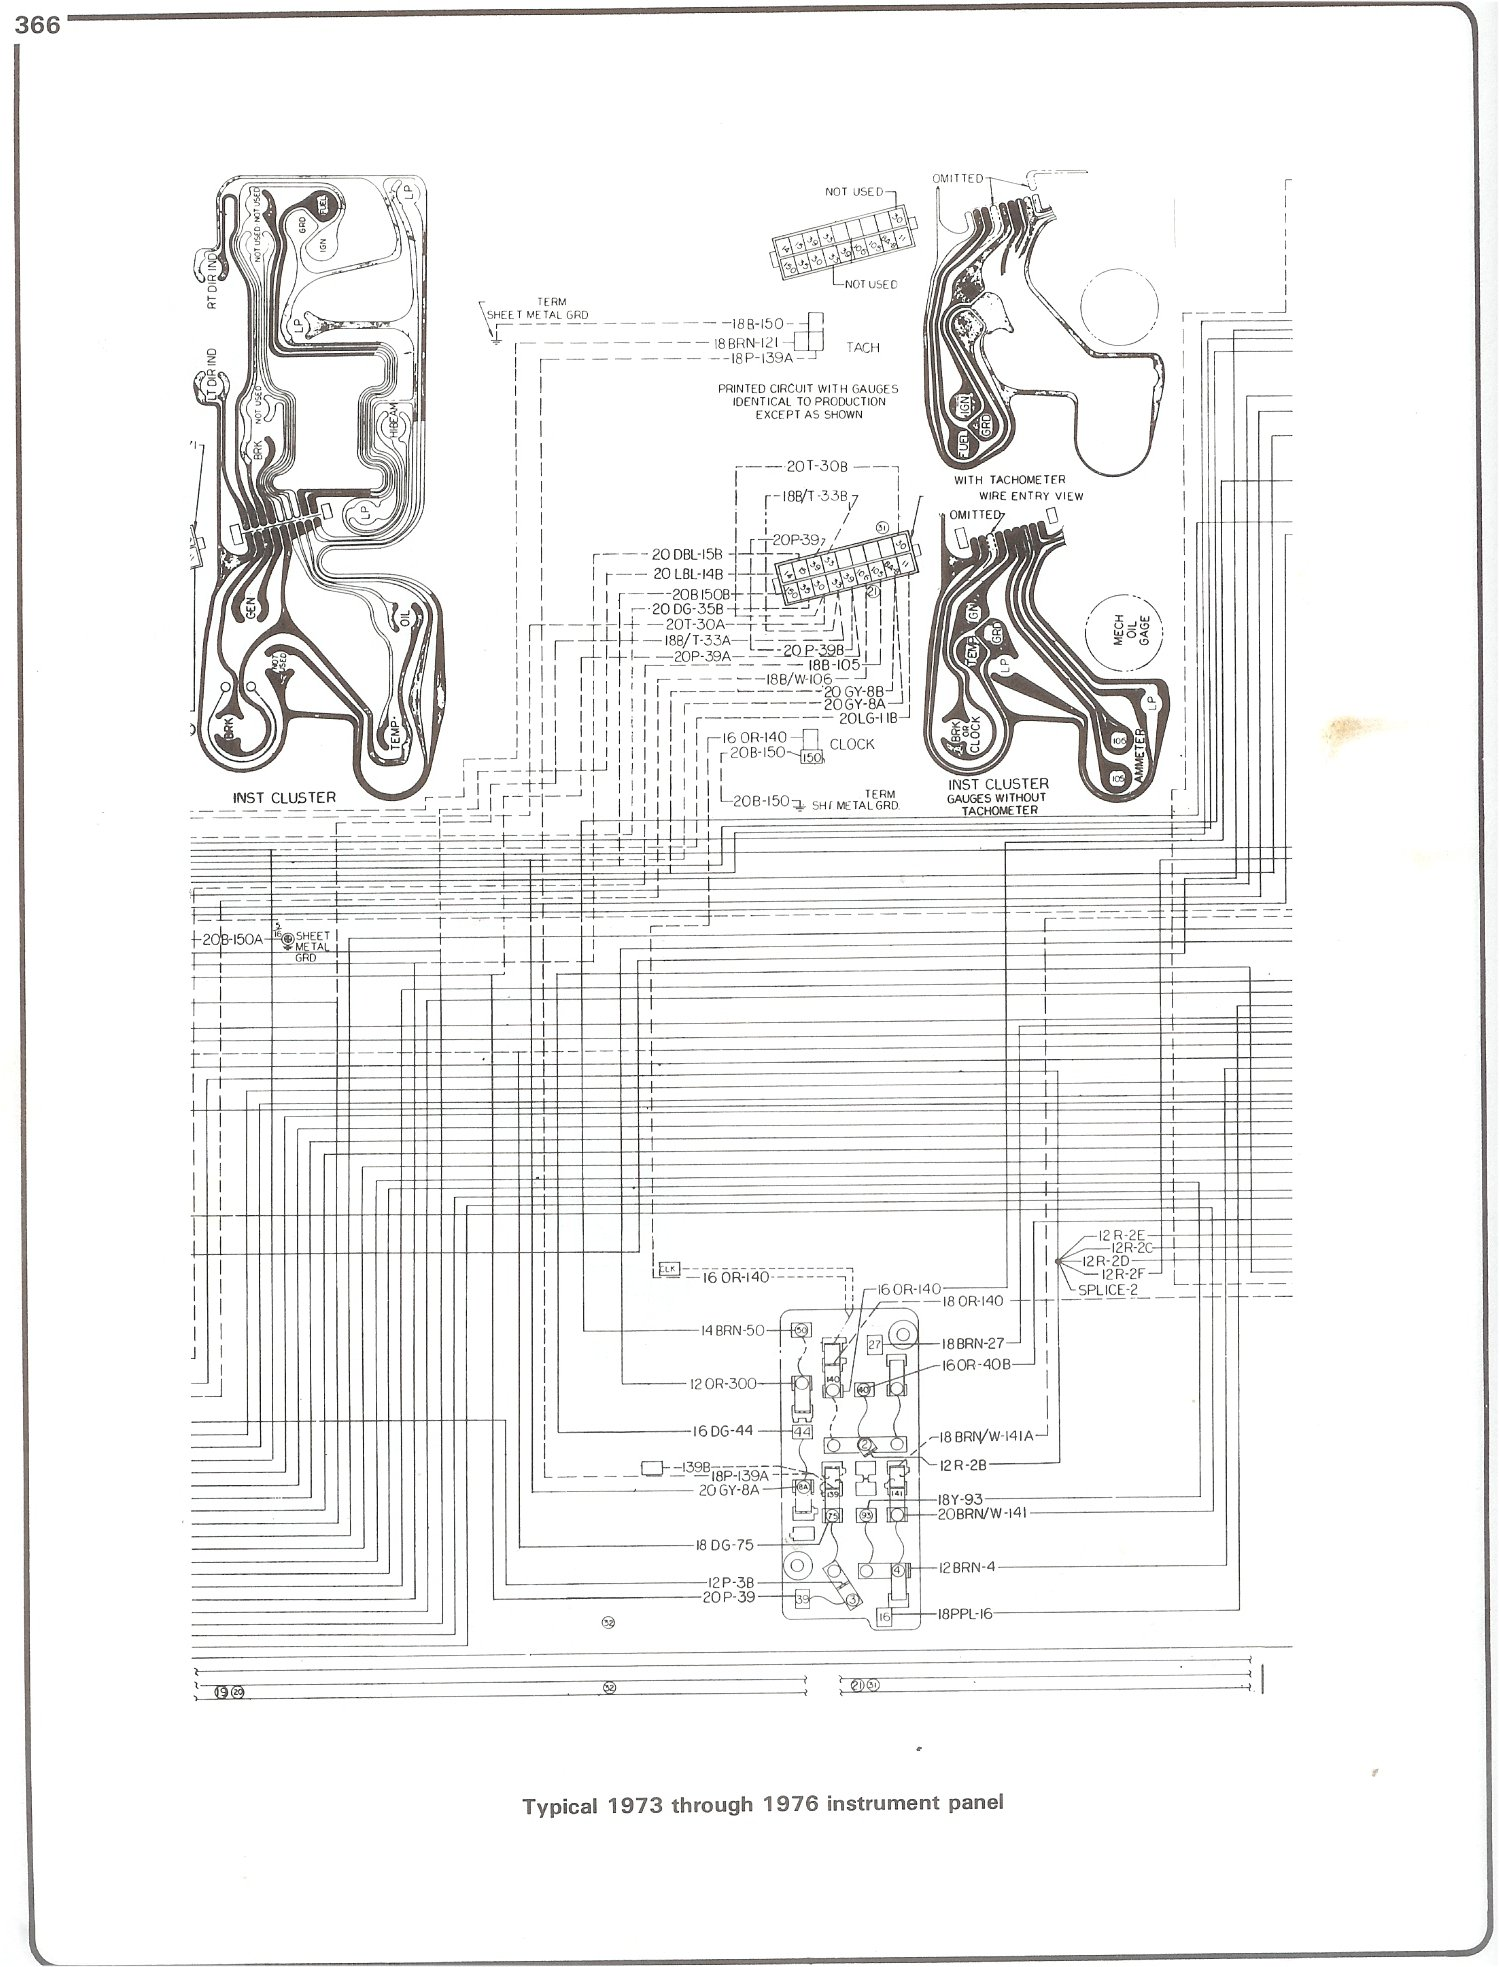 73 76_instrument complete 73 87 wiring diagrams 1998 chevy blazer instrument cluster wiring diagram at reclaimingppi.co